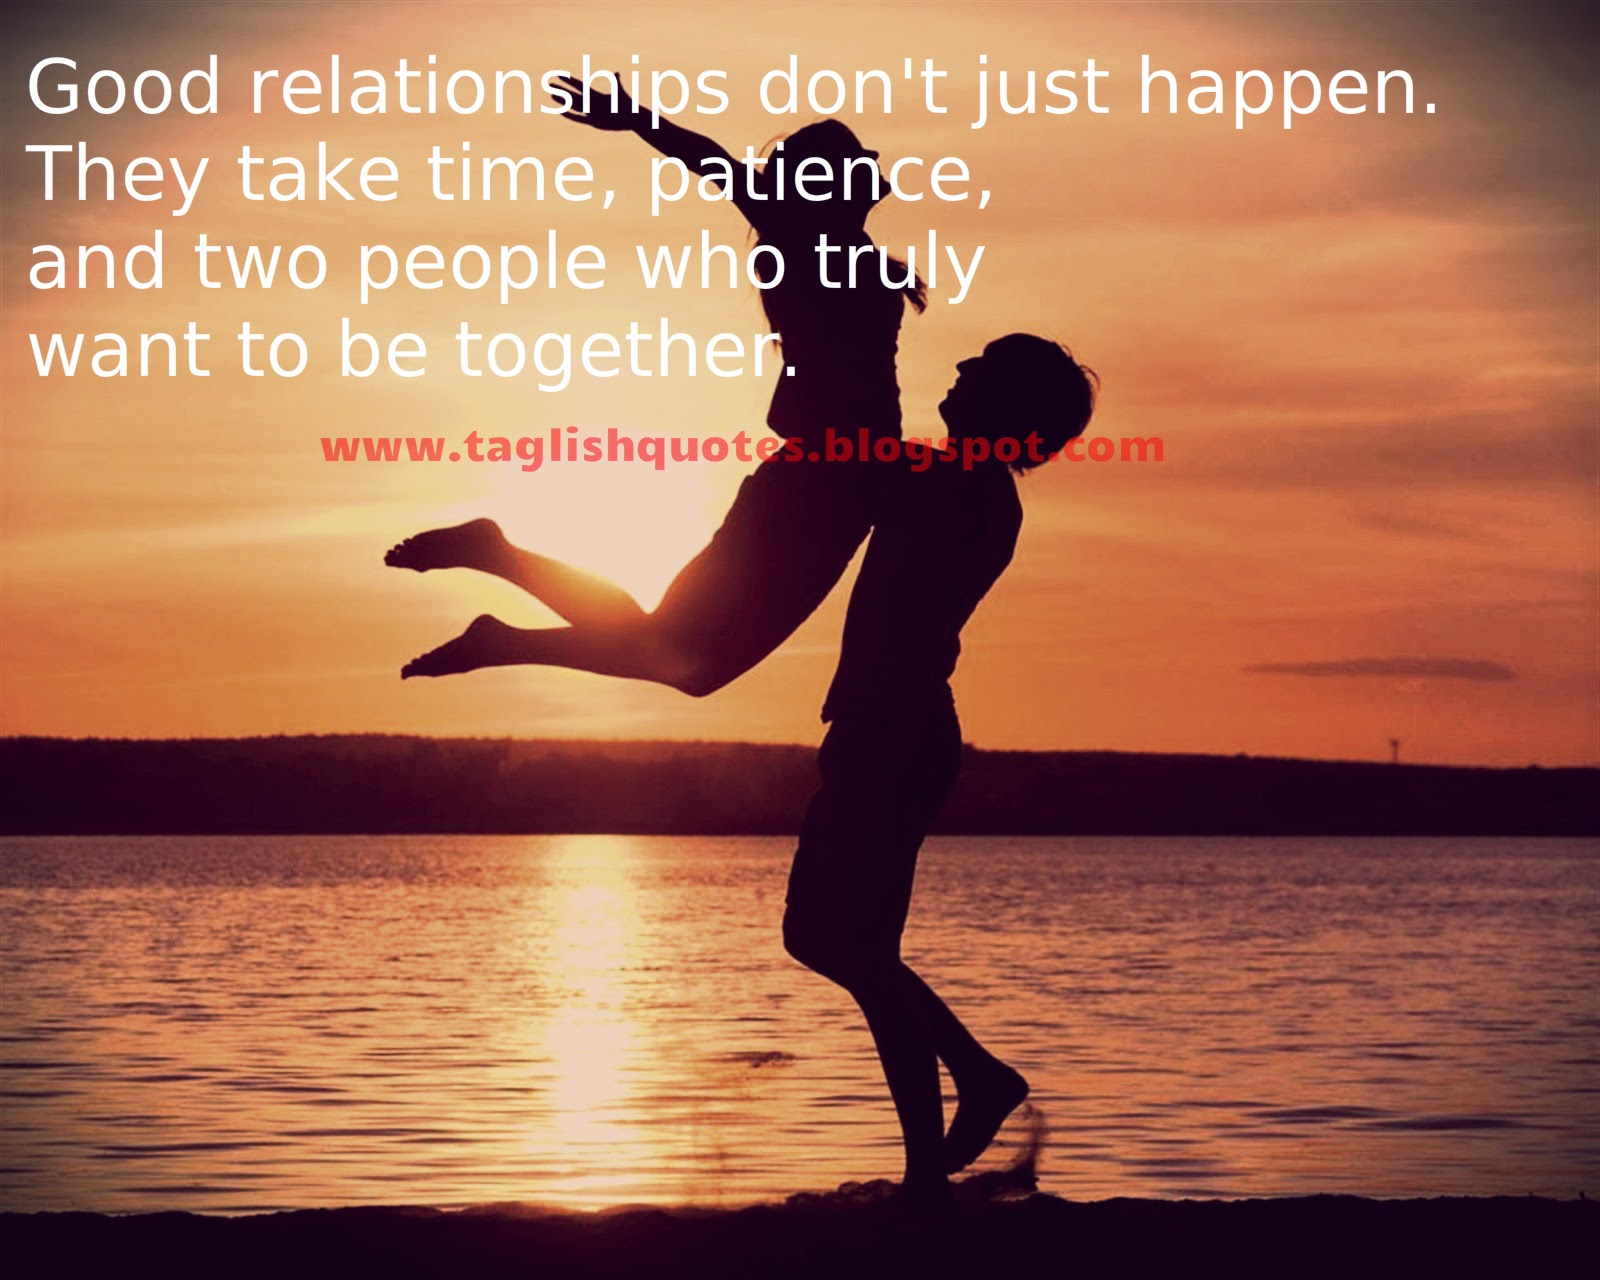 good relationships So working on our relationships is good for happiness and working on our happiness is good for our relationships that's a win all round relationships are human nature.